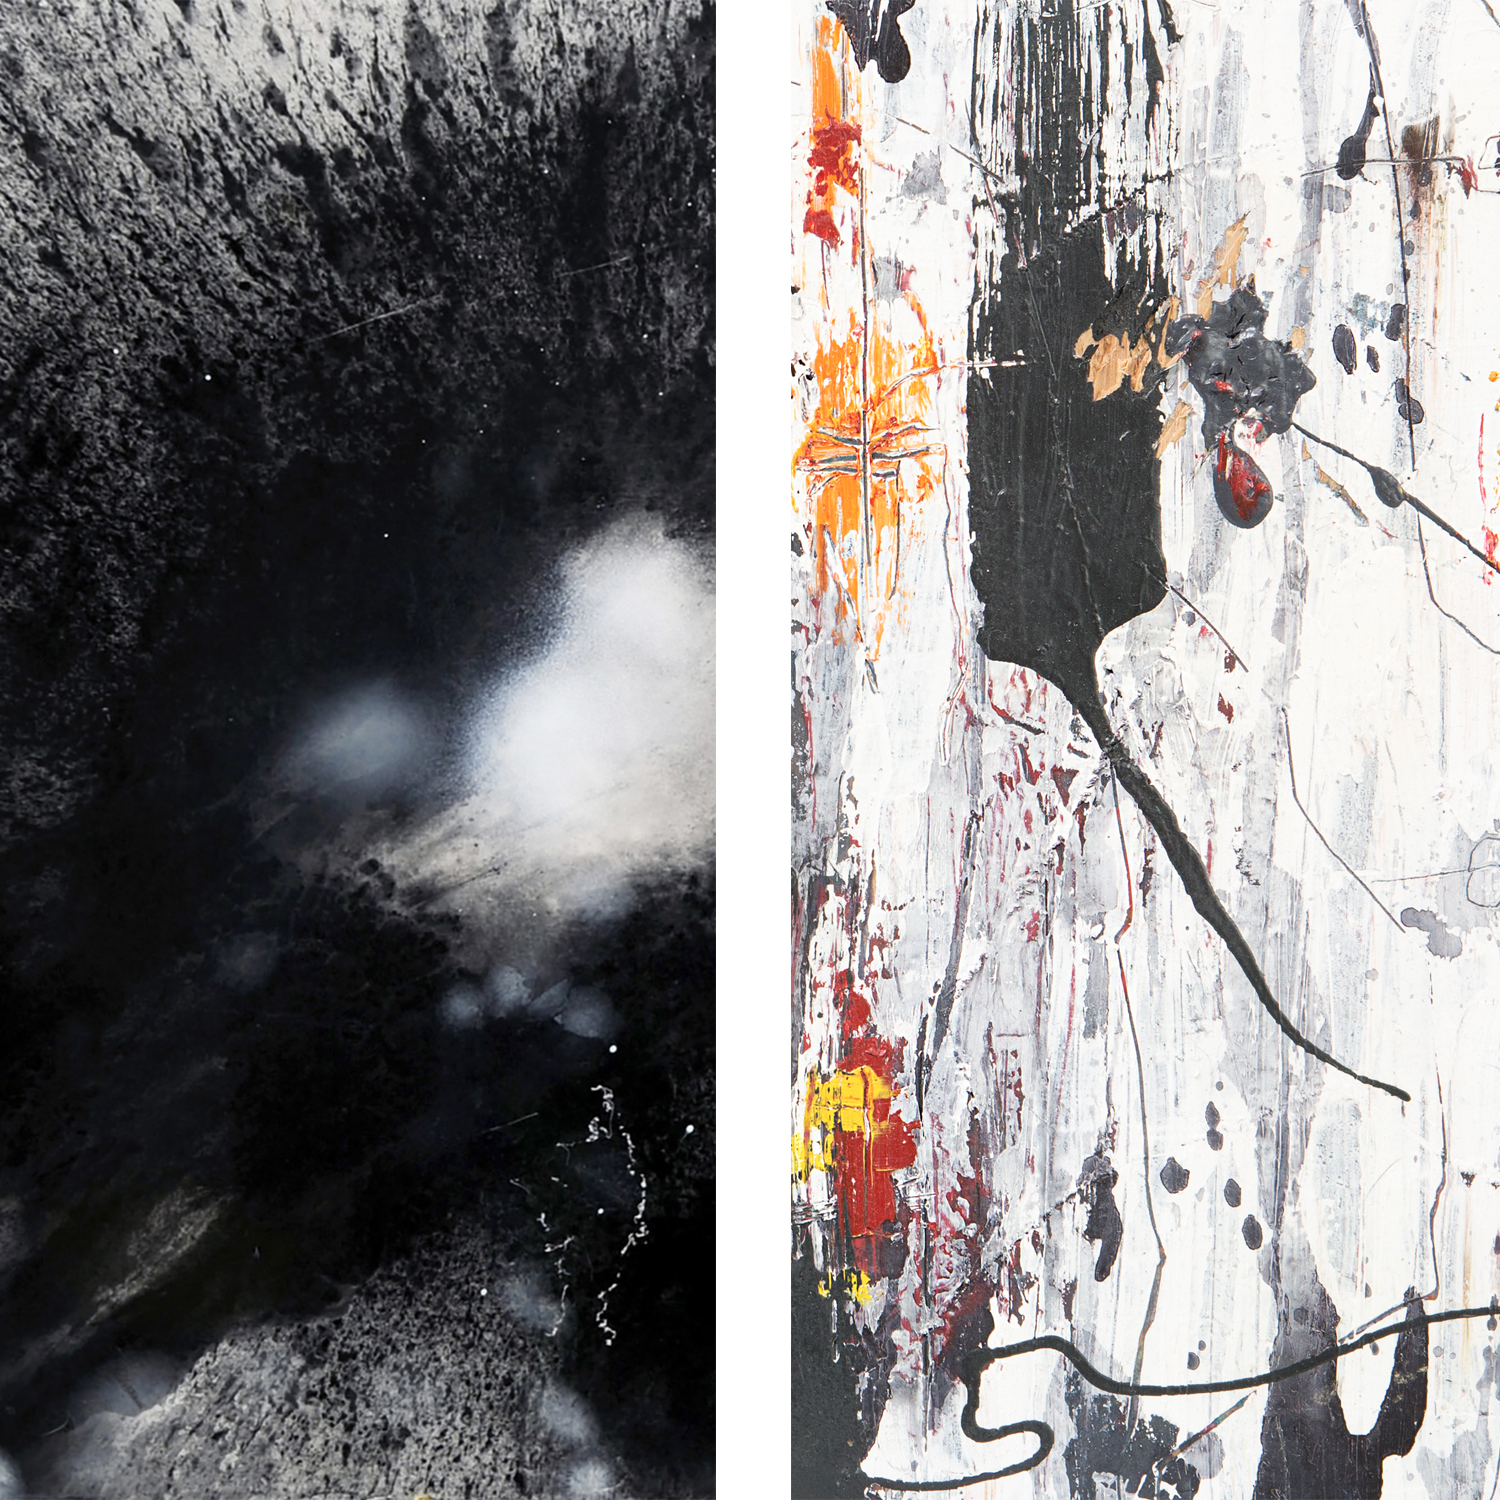 PAINTINGS BY JOE REICH + CHRIS TREJO